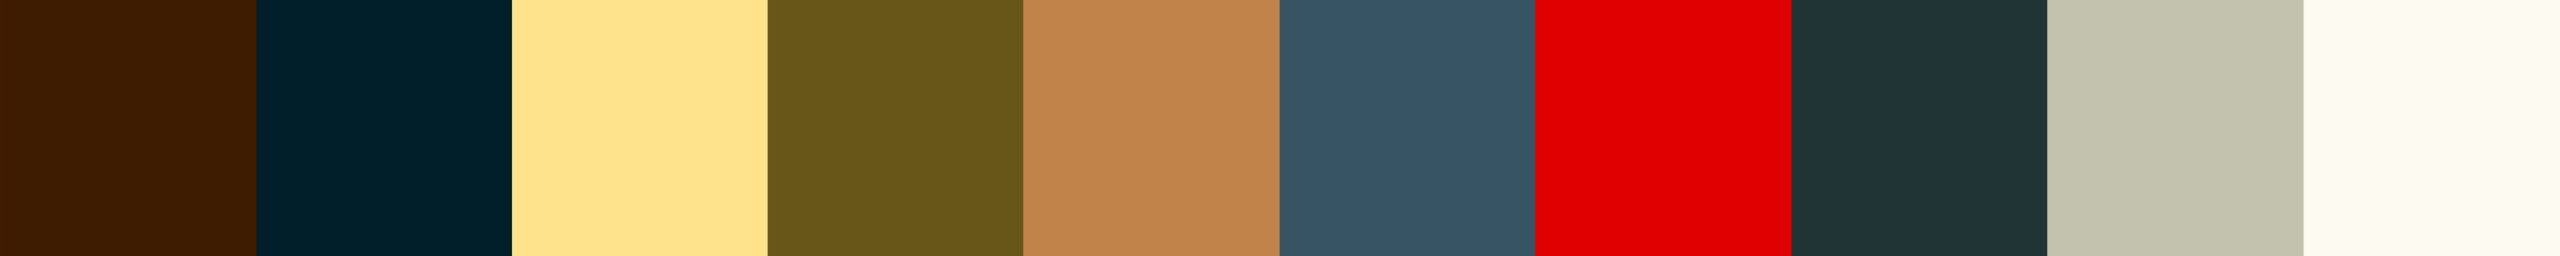 378 Kriveliana Color Palette